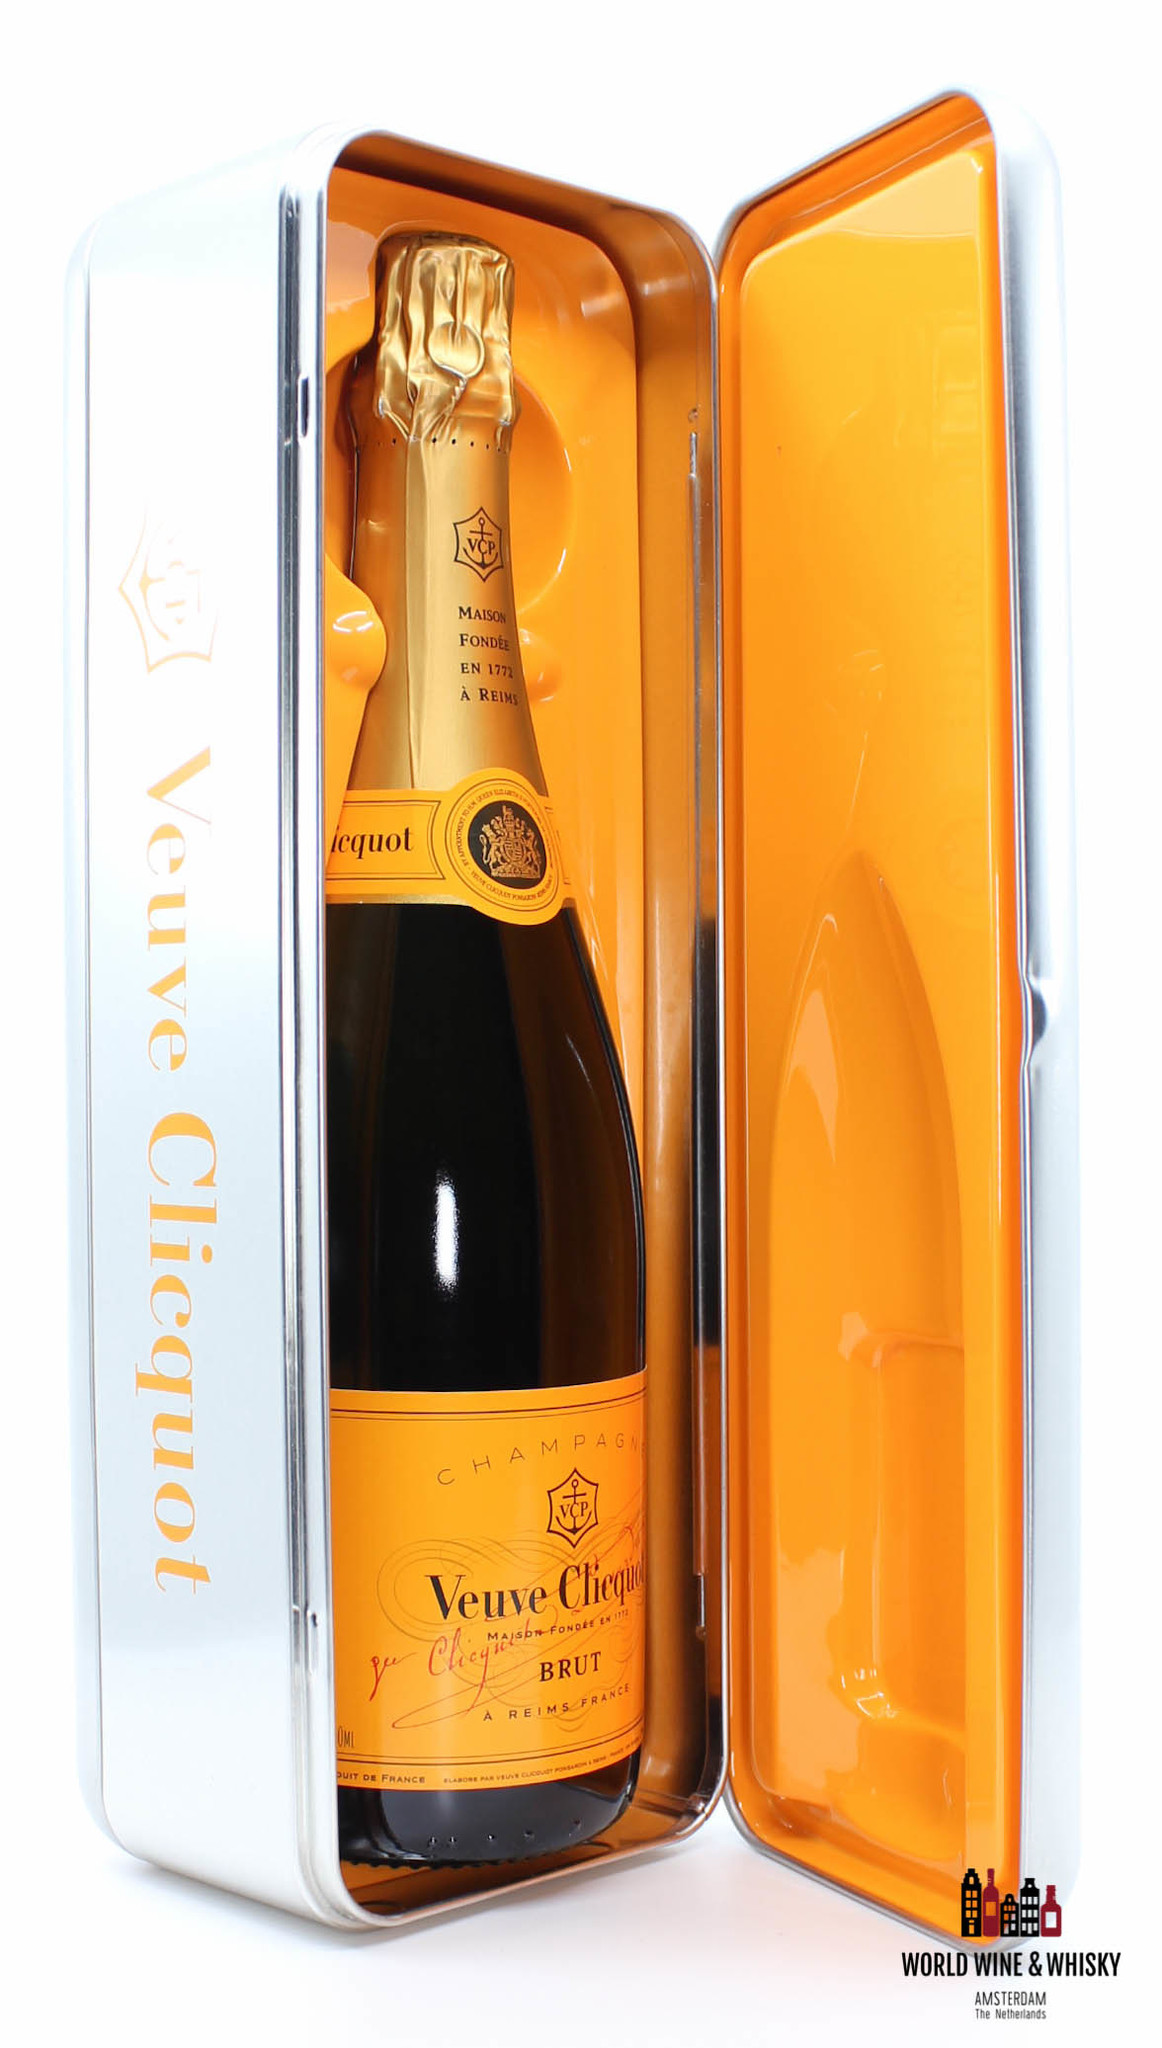 Veuve Clicquot Veuve Clicquot Champagne Brut - in silver/metal fridge